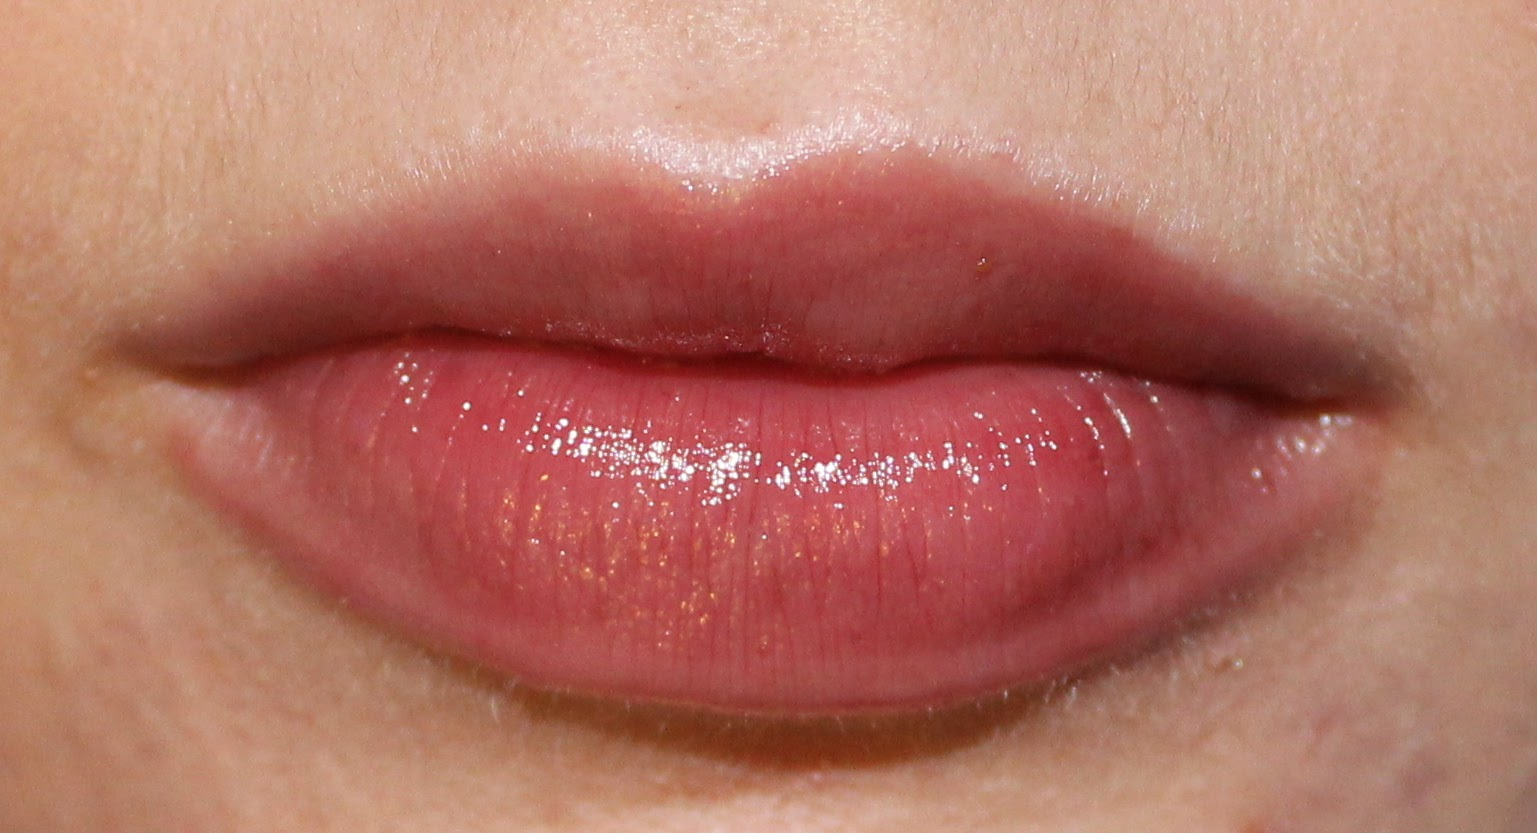 Fresh Sugar Lip Treatment SPF 15 in Plum on Lips